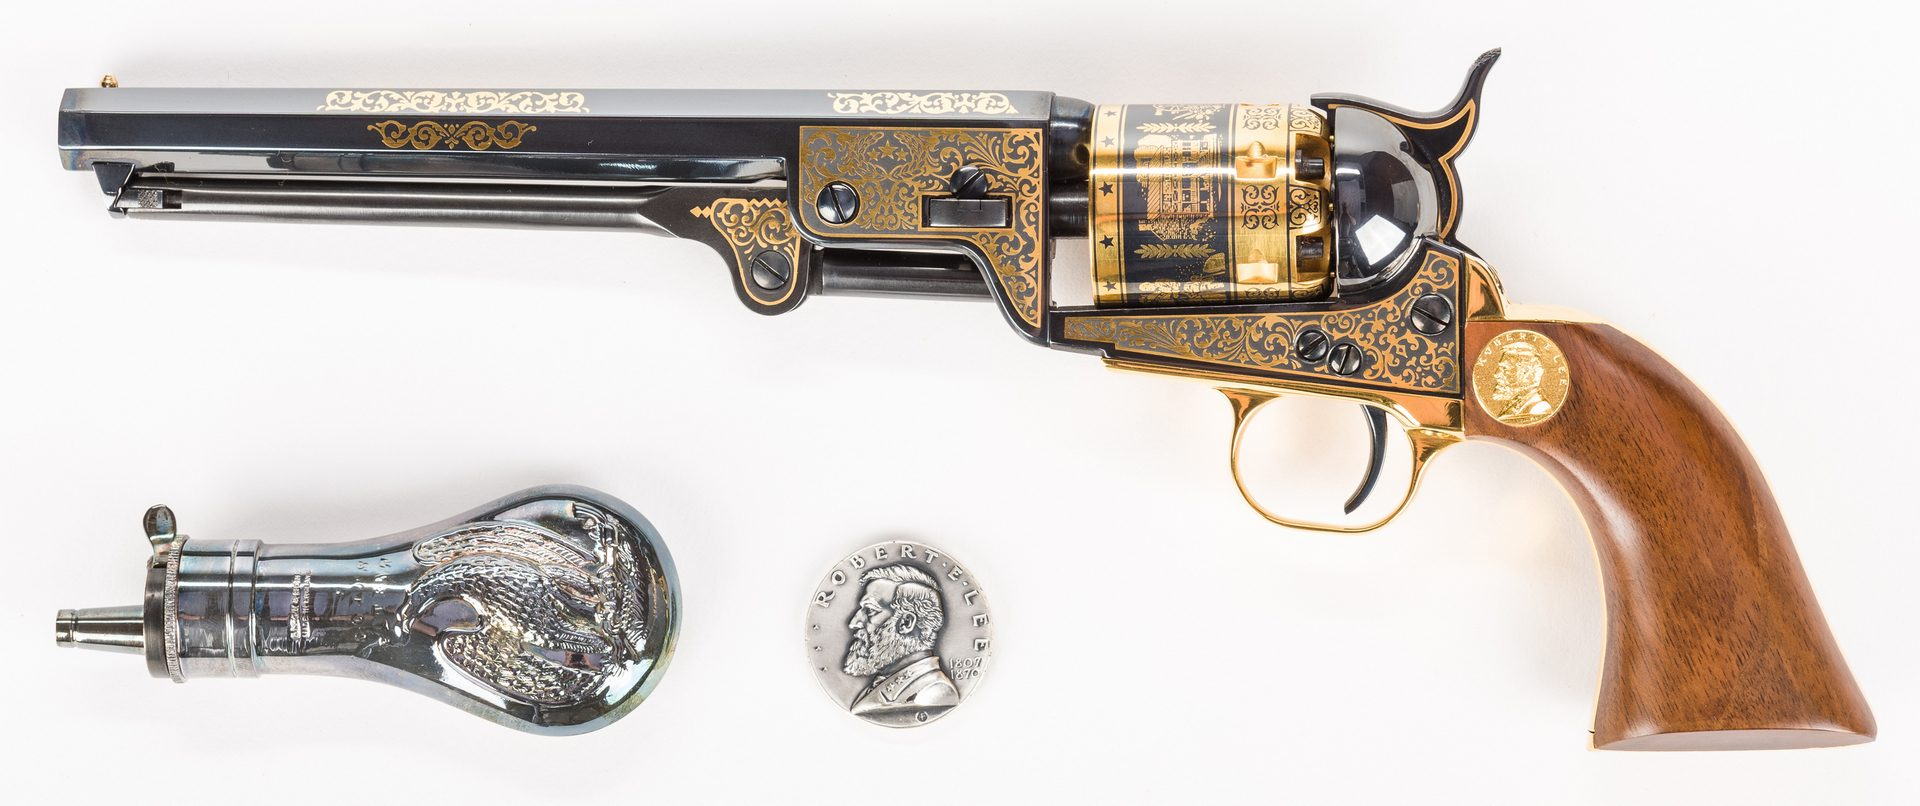 Lot 223: Robert E. Lee Commemorative Pistol, U.S. Historical Society